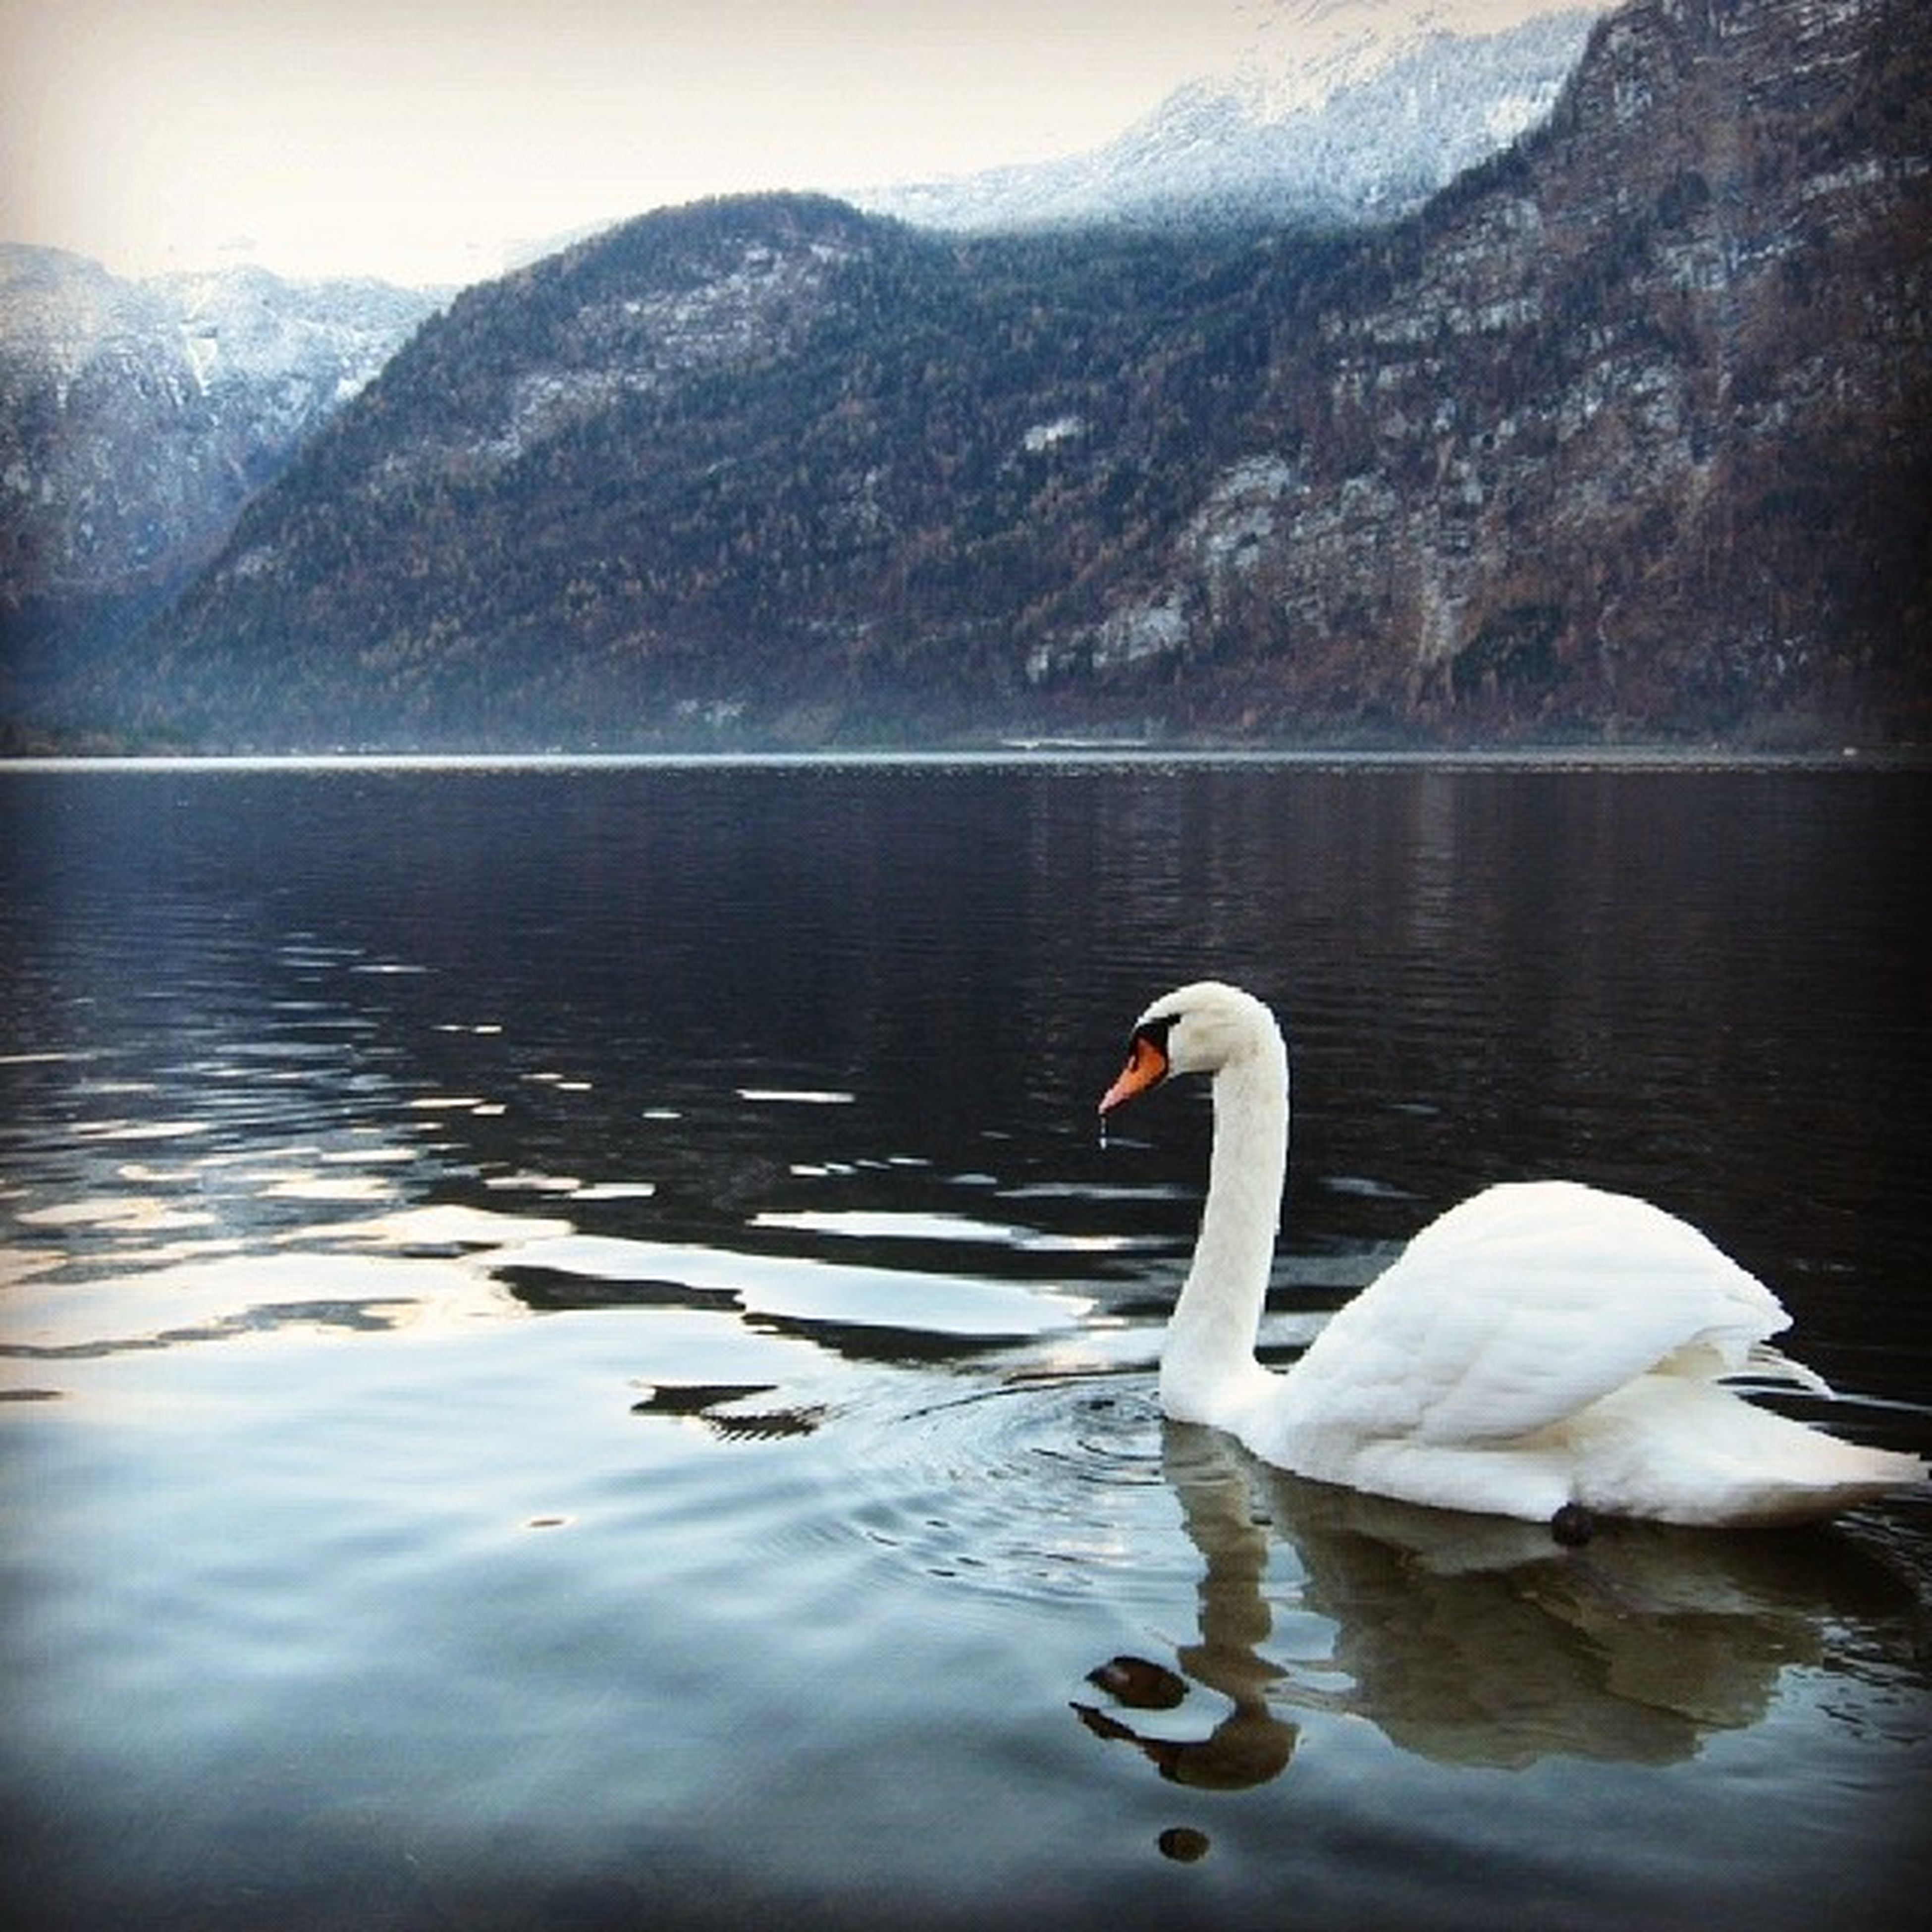 water, lake, bird, swan, animal themes, reflection, animals in the wild, wildlife, waterfront, swimming, nature, white color, water bird, beauty in nature, tranquility, rippled, tranquil scene, floating on water, outdoors, no people